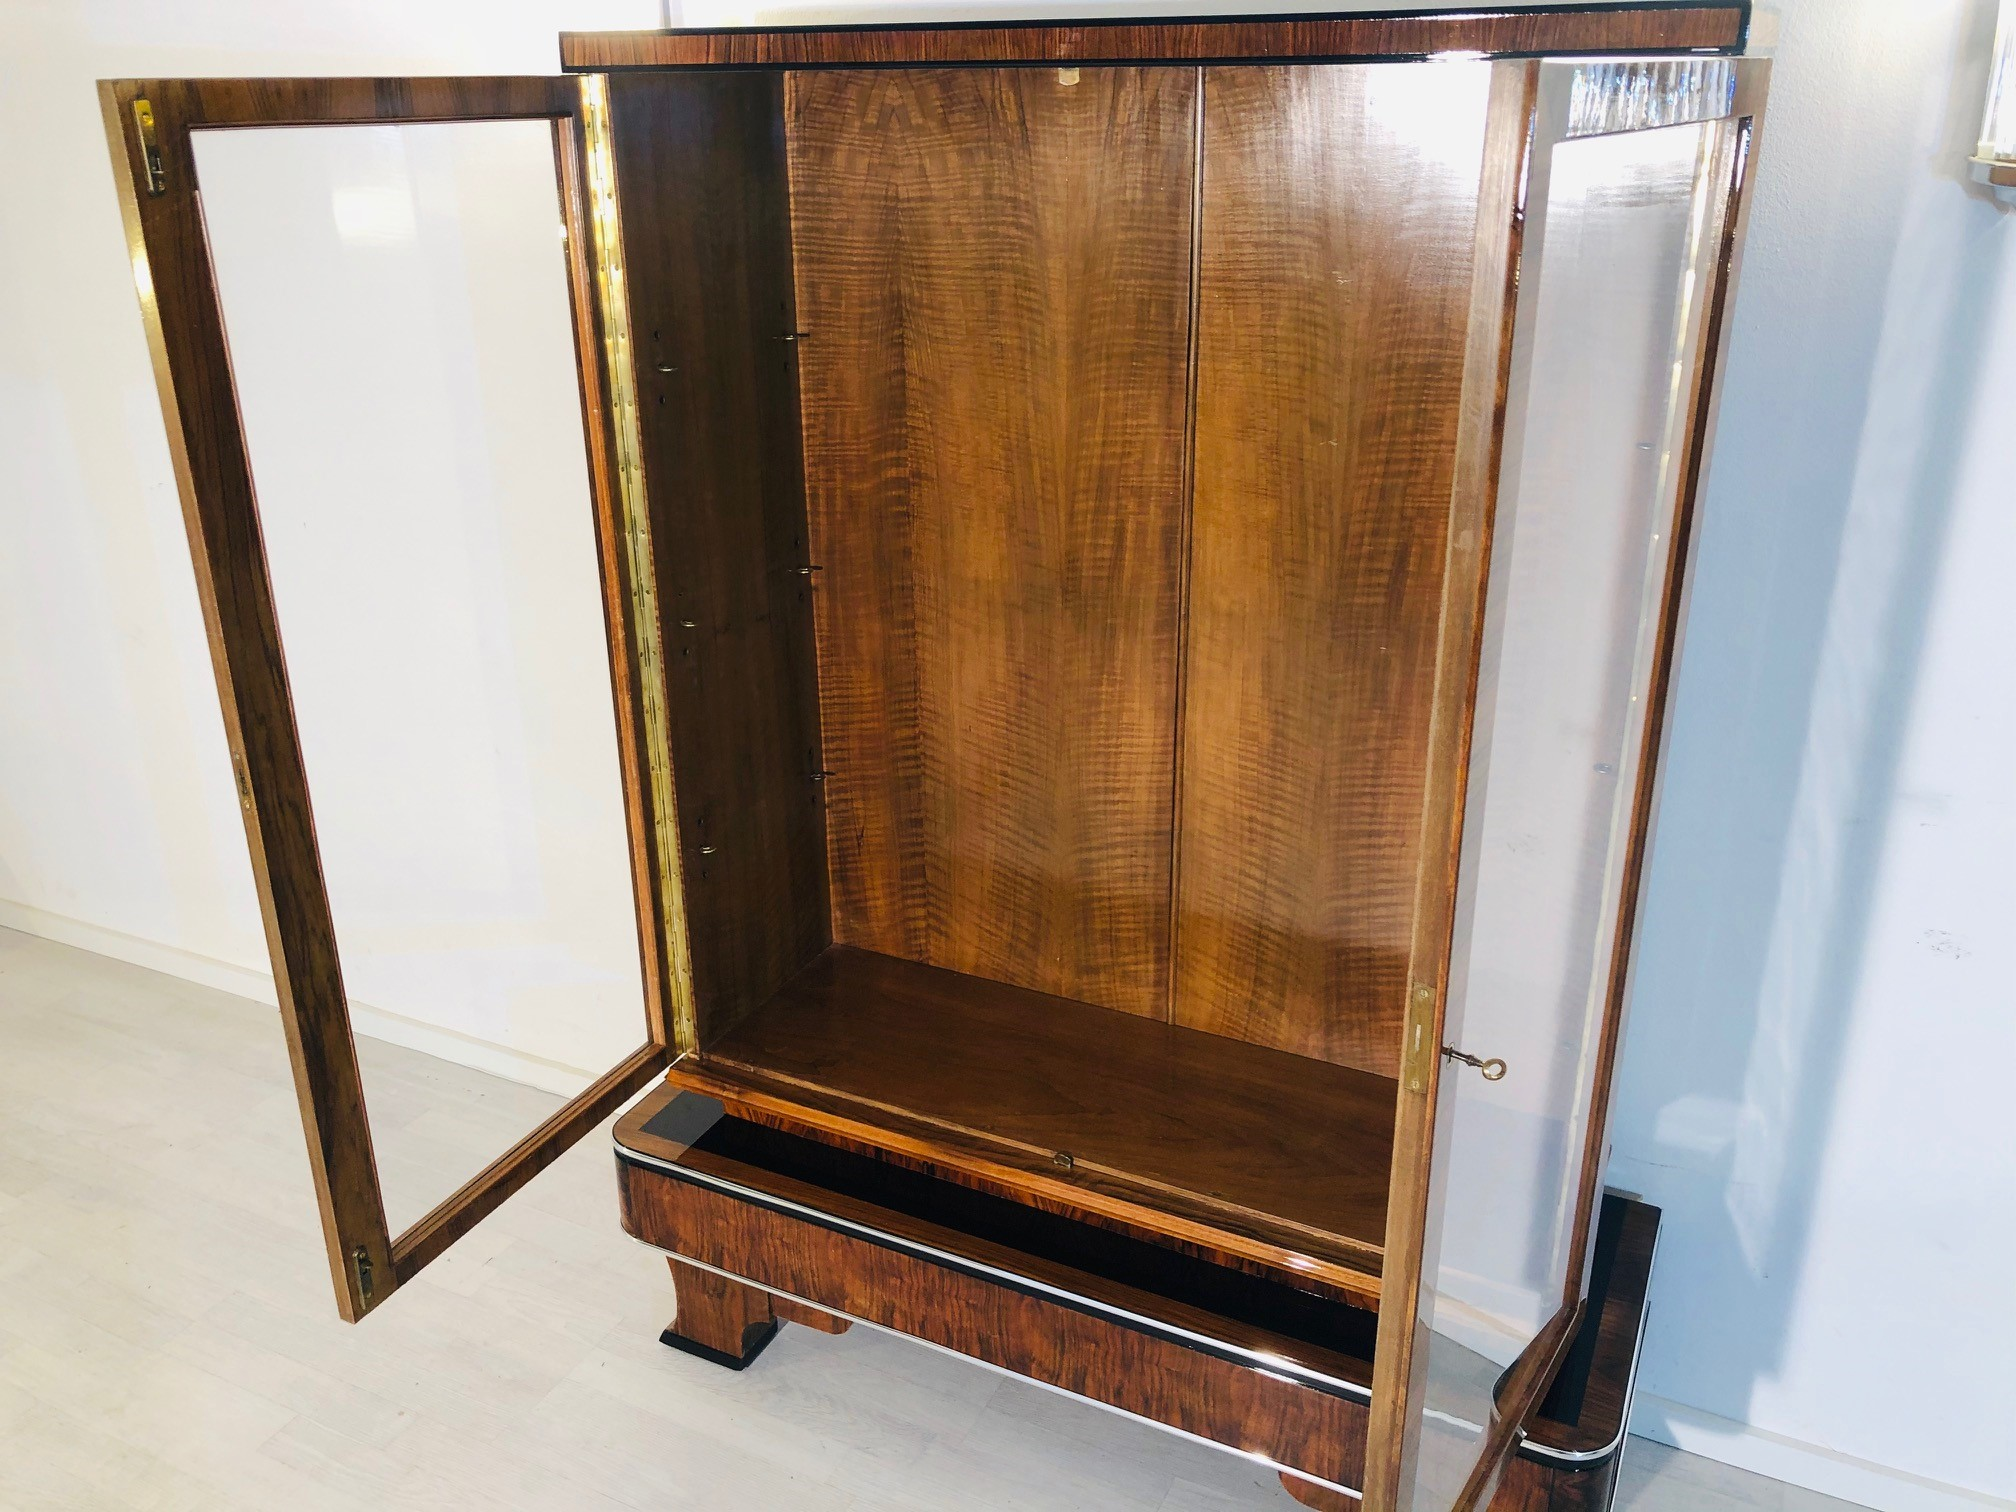 1930s Art Deco Walnut Vitrine Cabinet Original Antique Furniture